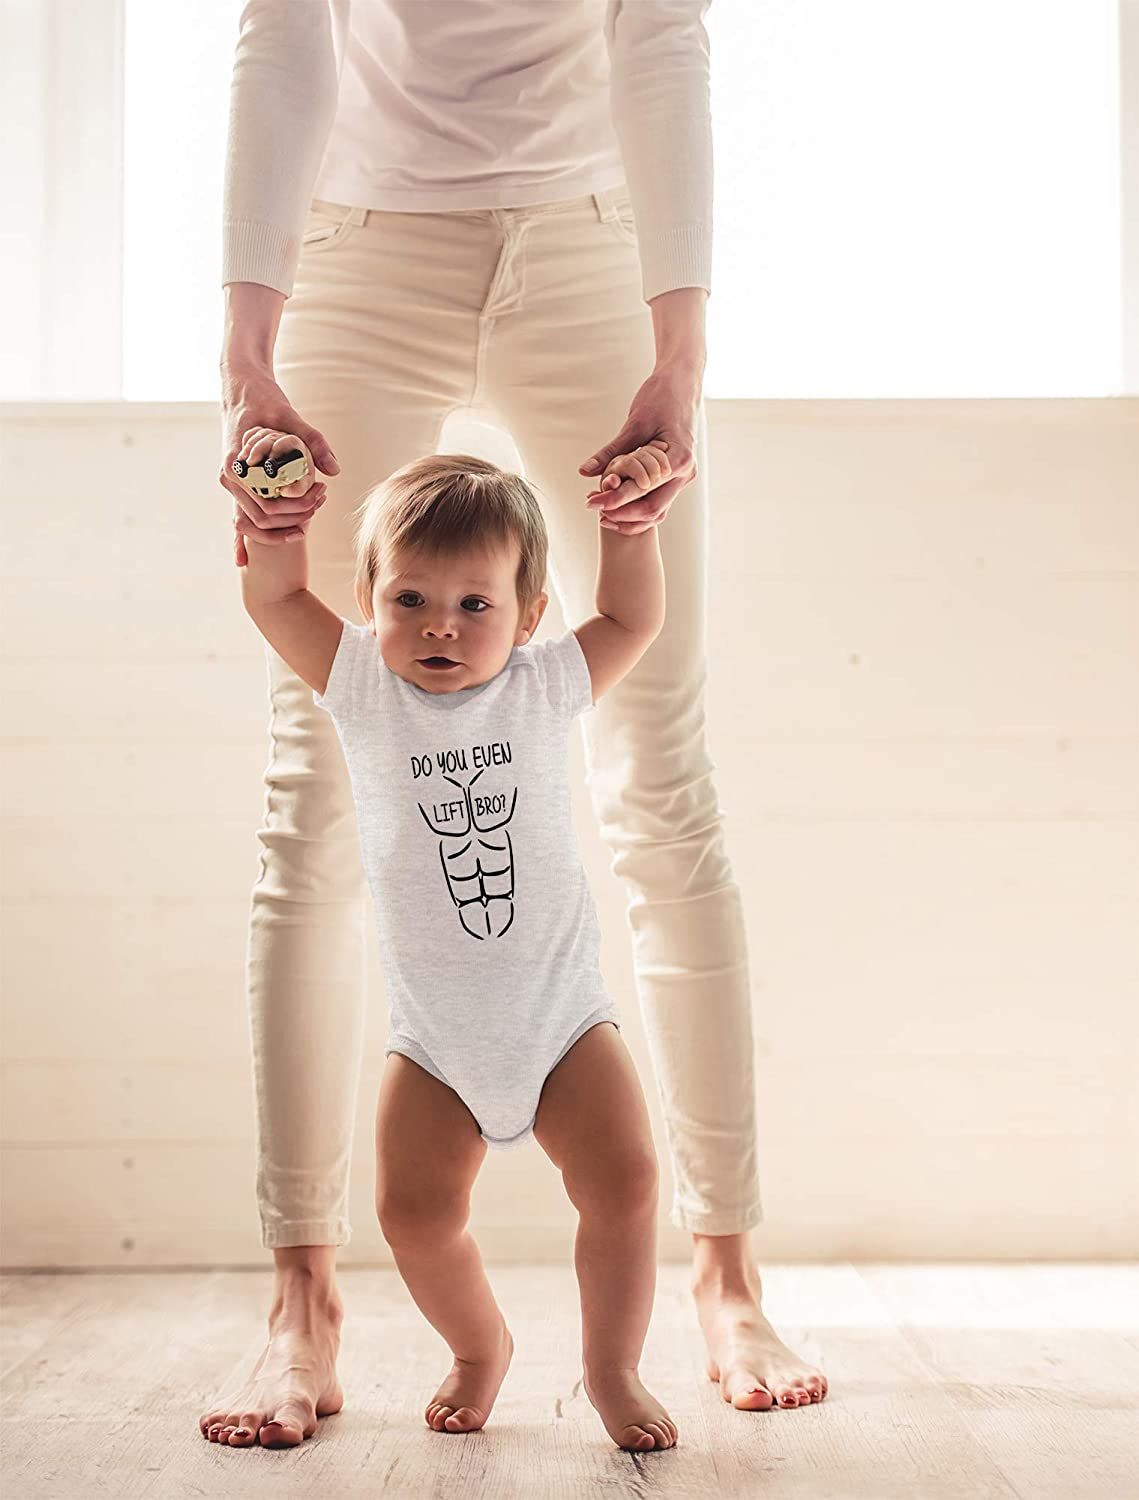 Cute Infant One-Piece Baby Bodysuit Sarcastic Weightlifting Outfit CBTwear Do You Even Lift Bro